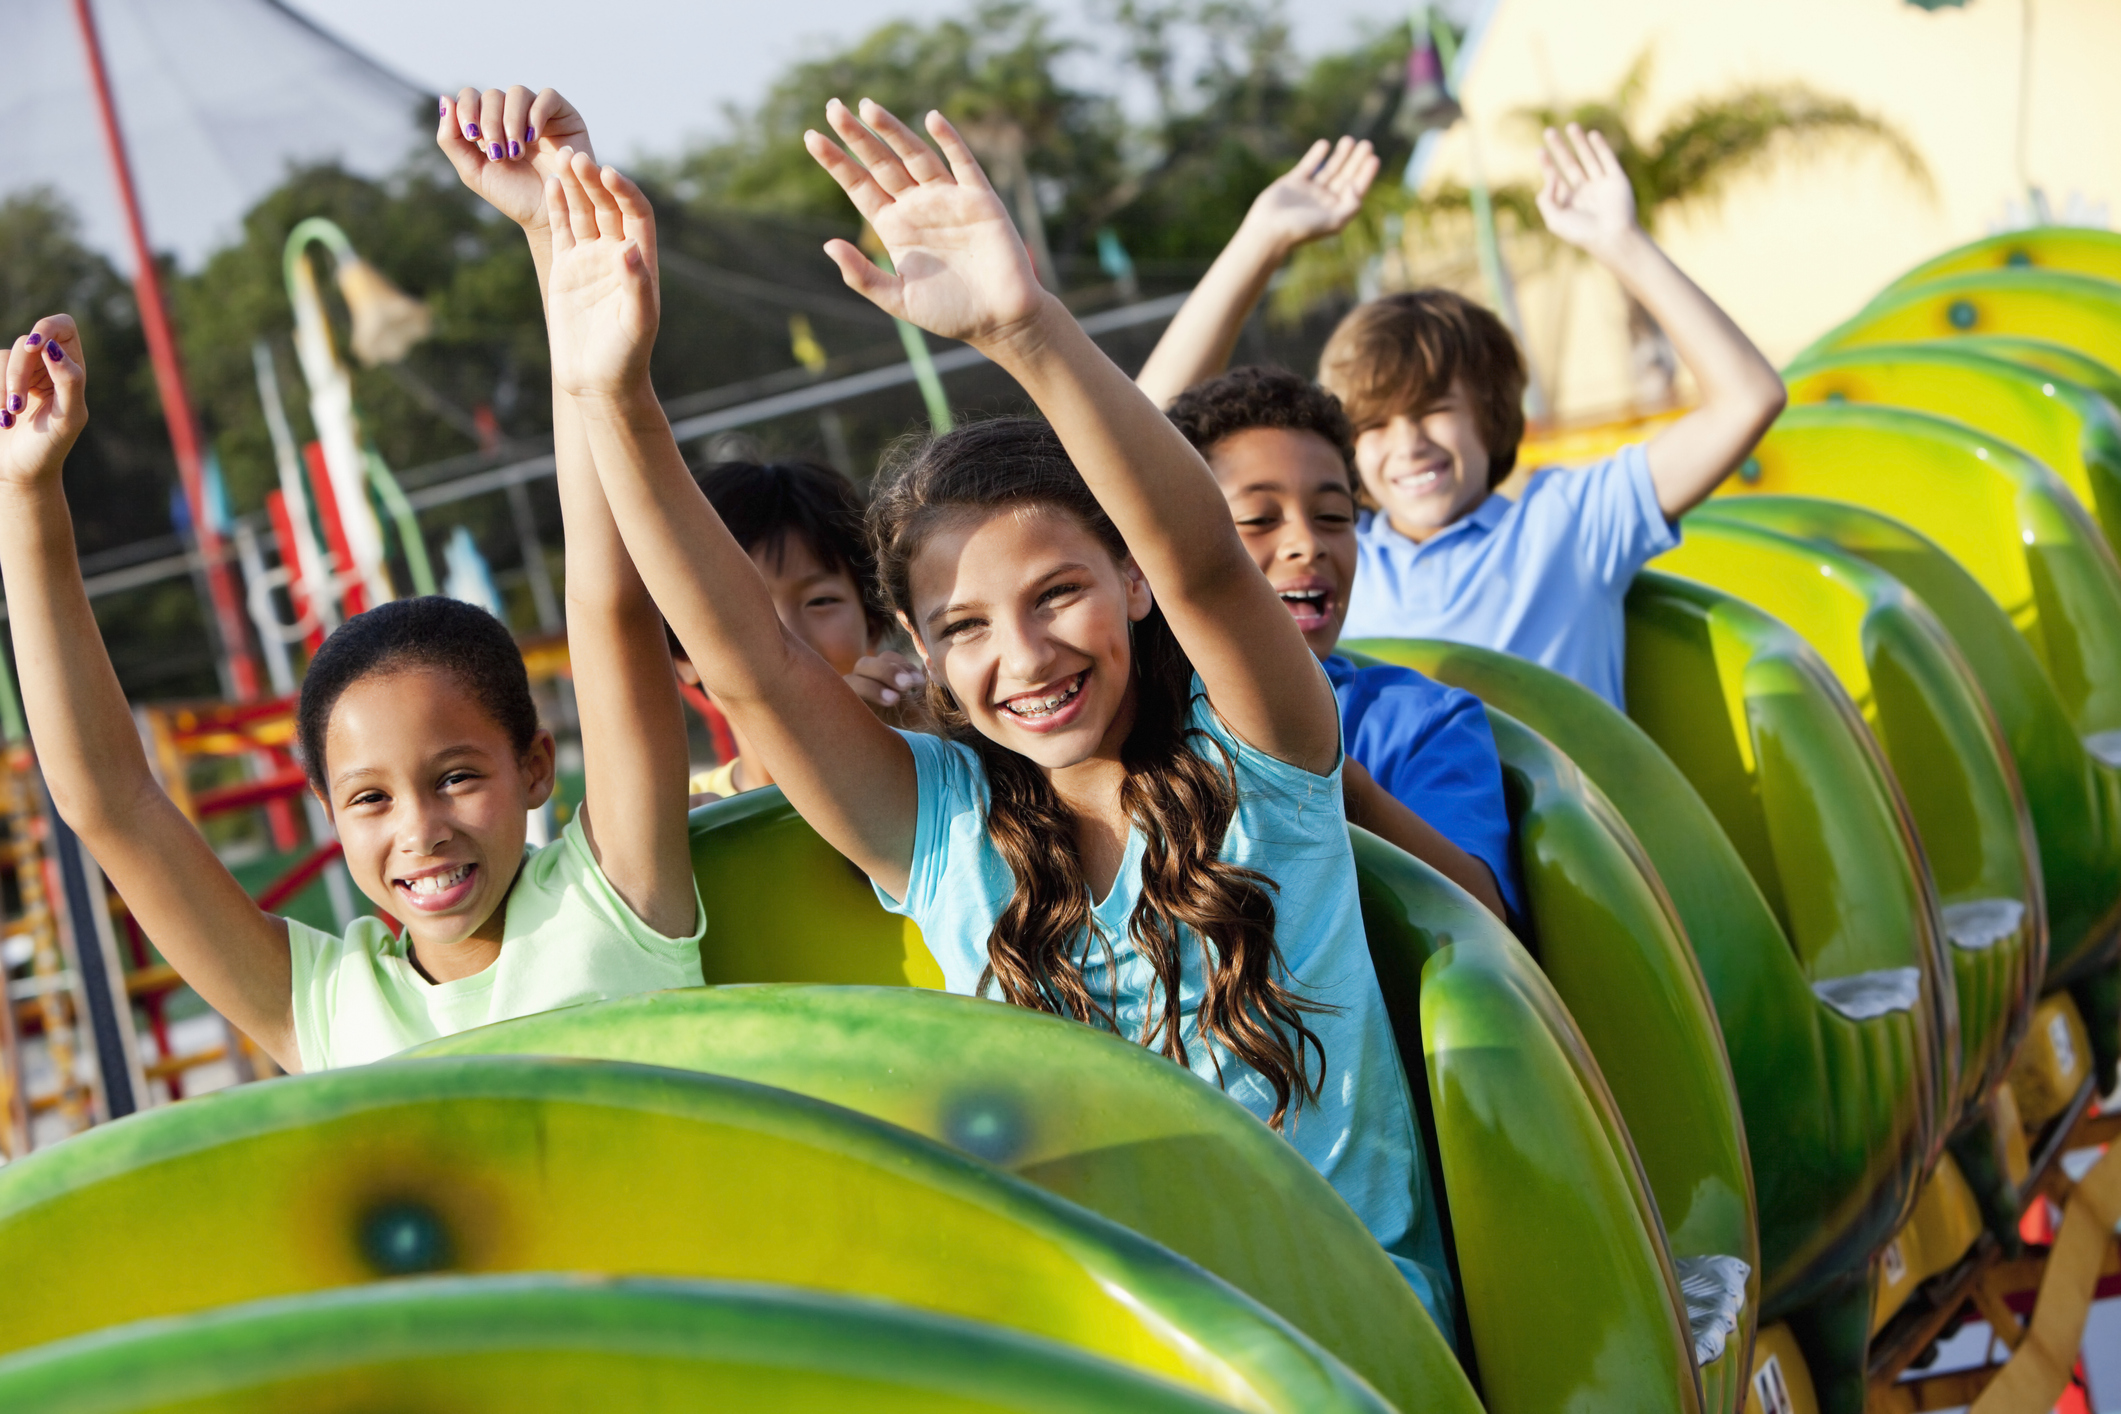 Insurance for Amusement Devices and Rides